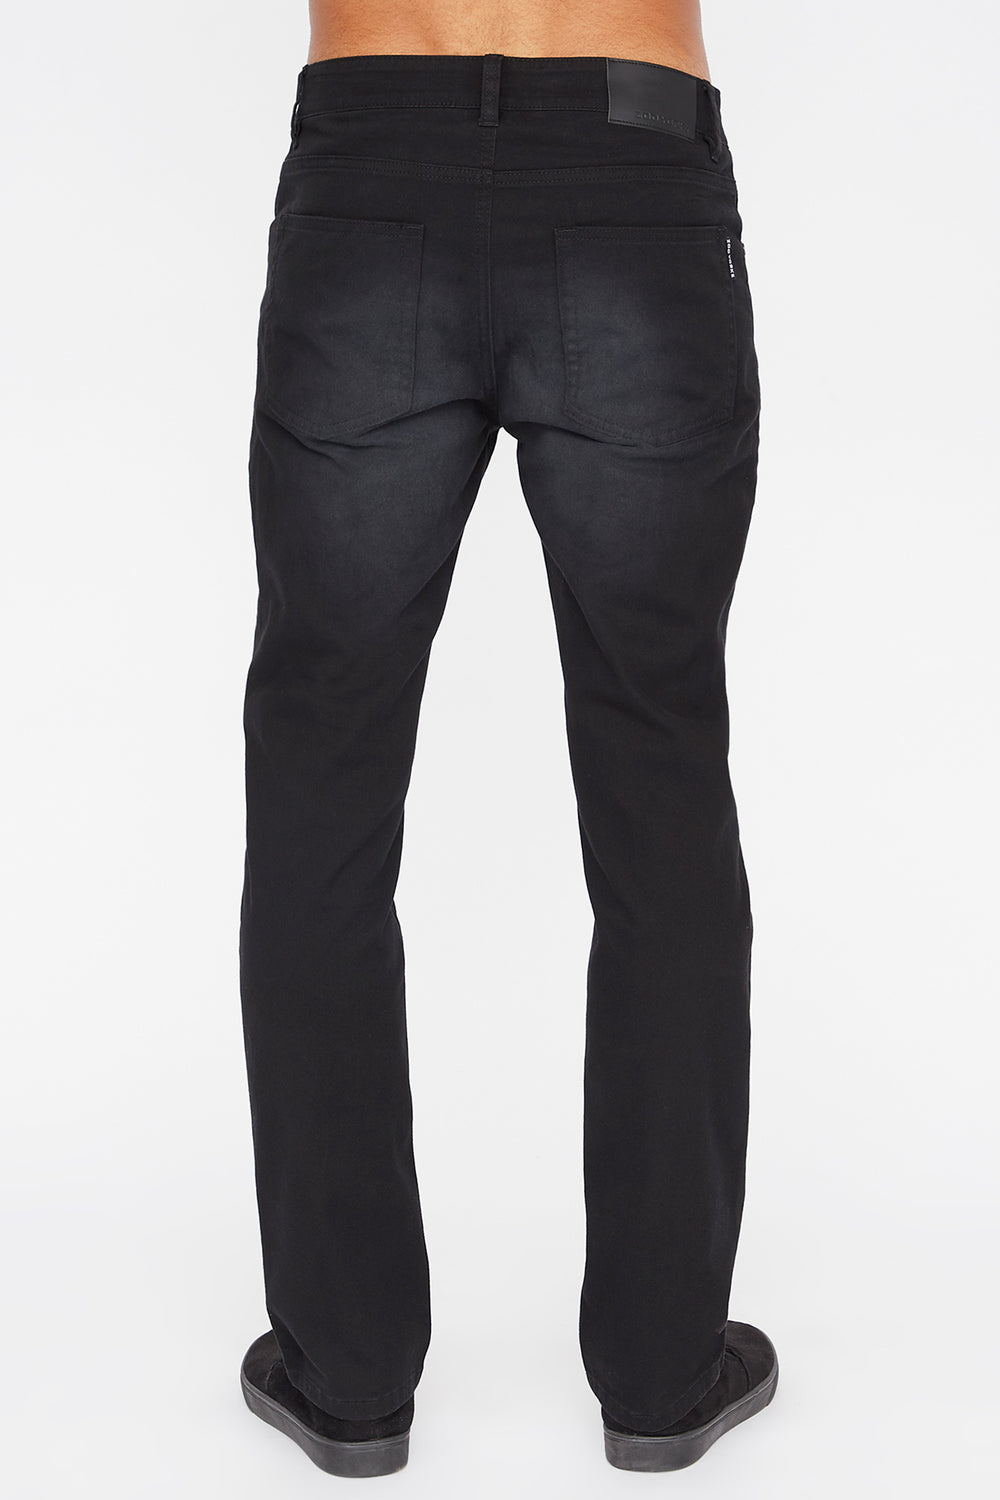 Zoo York Mens Slim Jeans Black